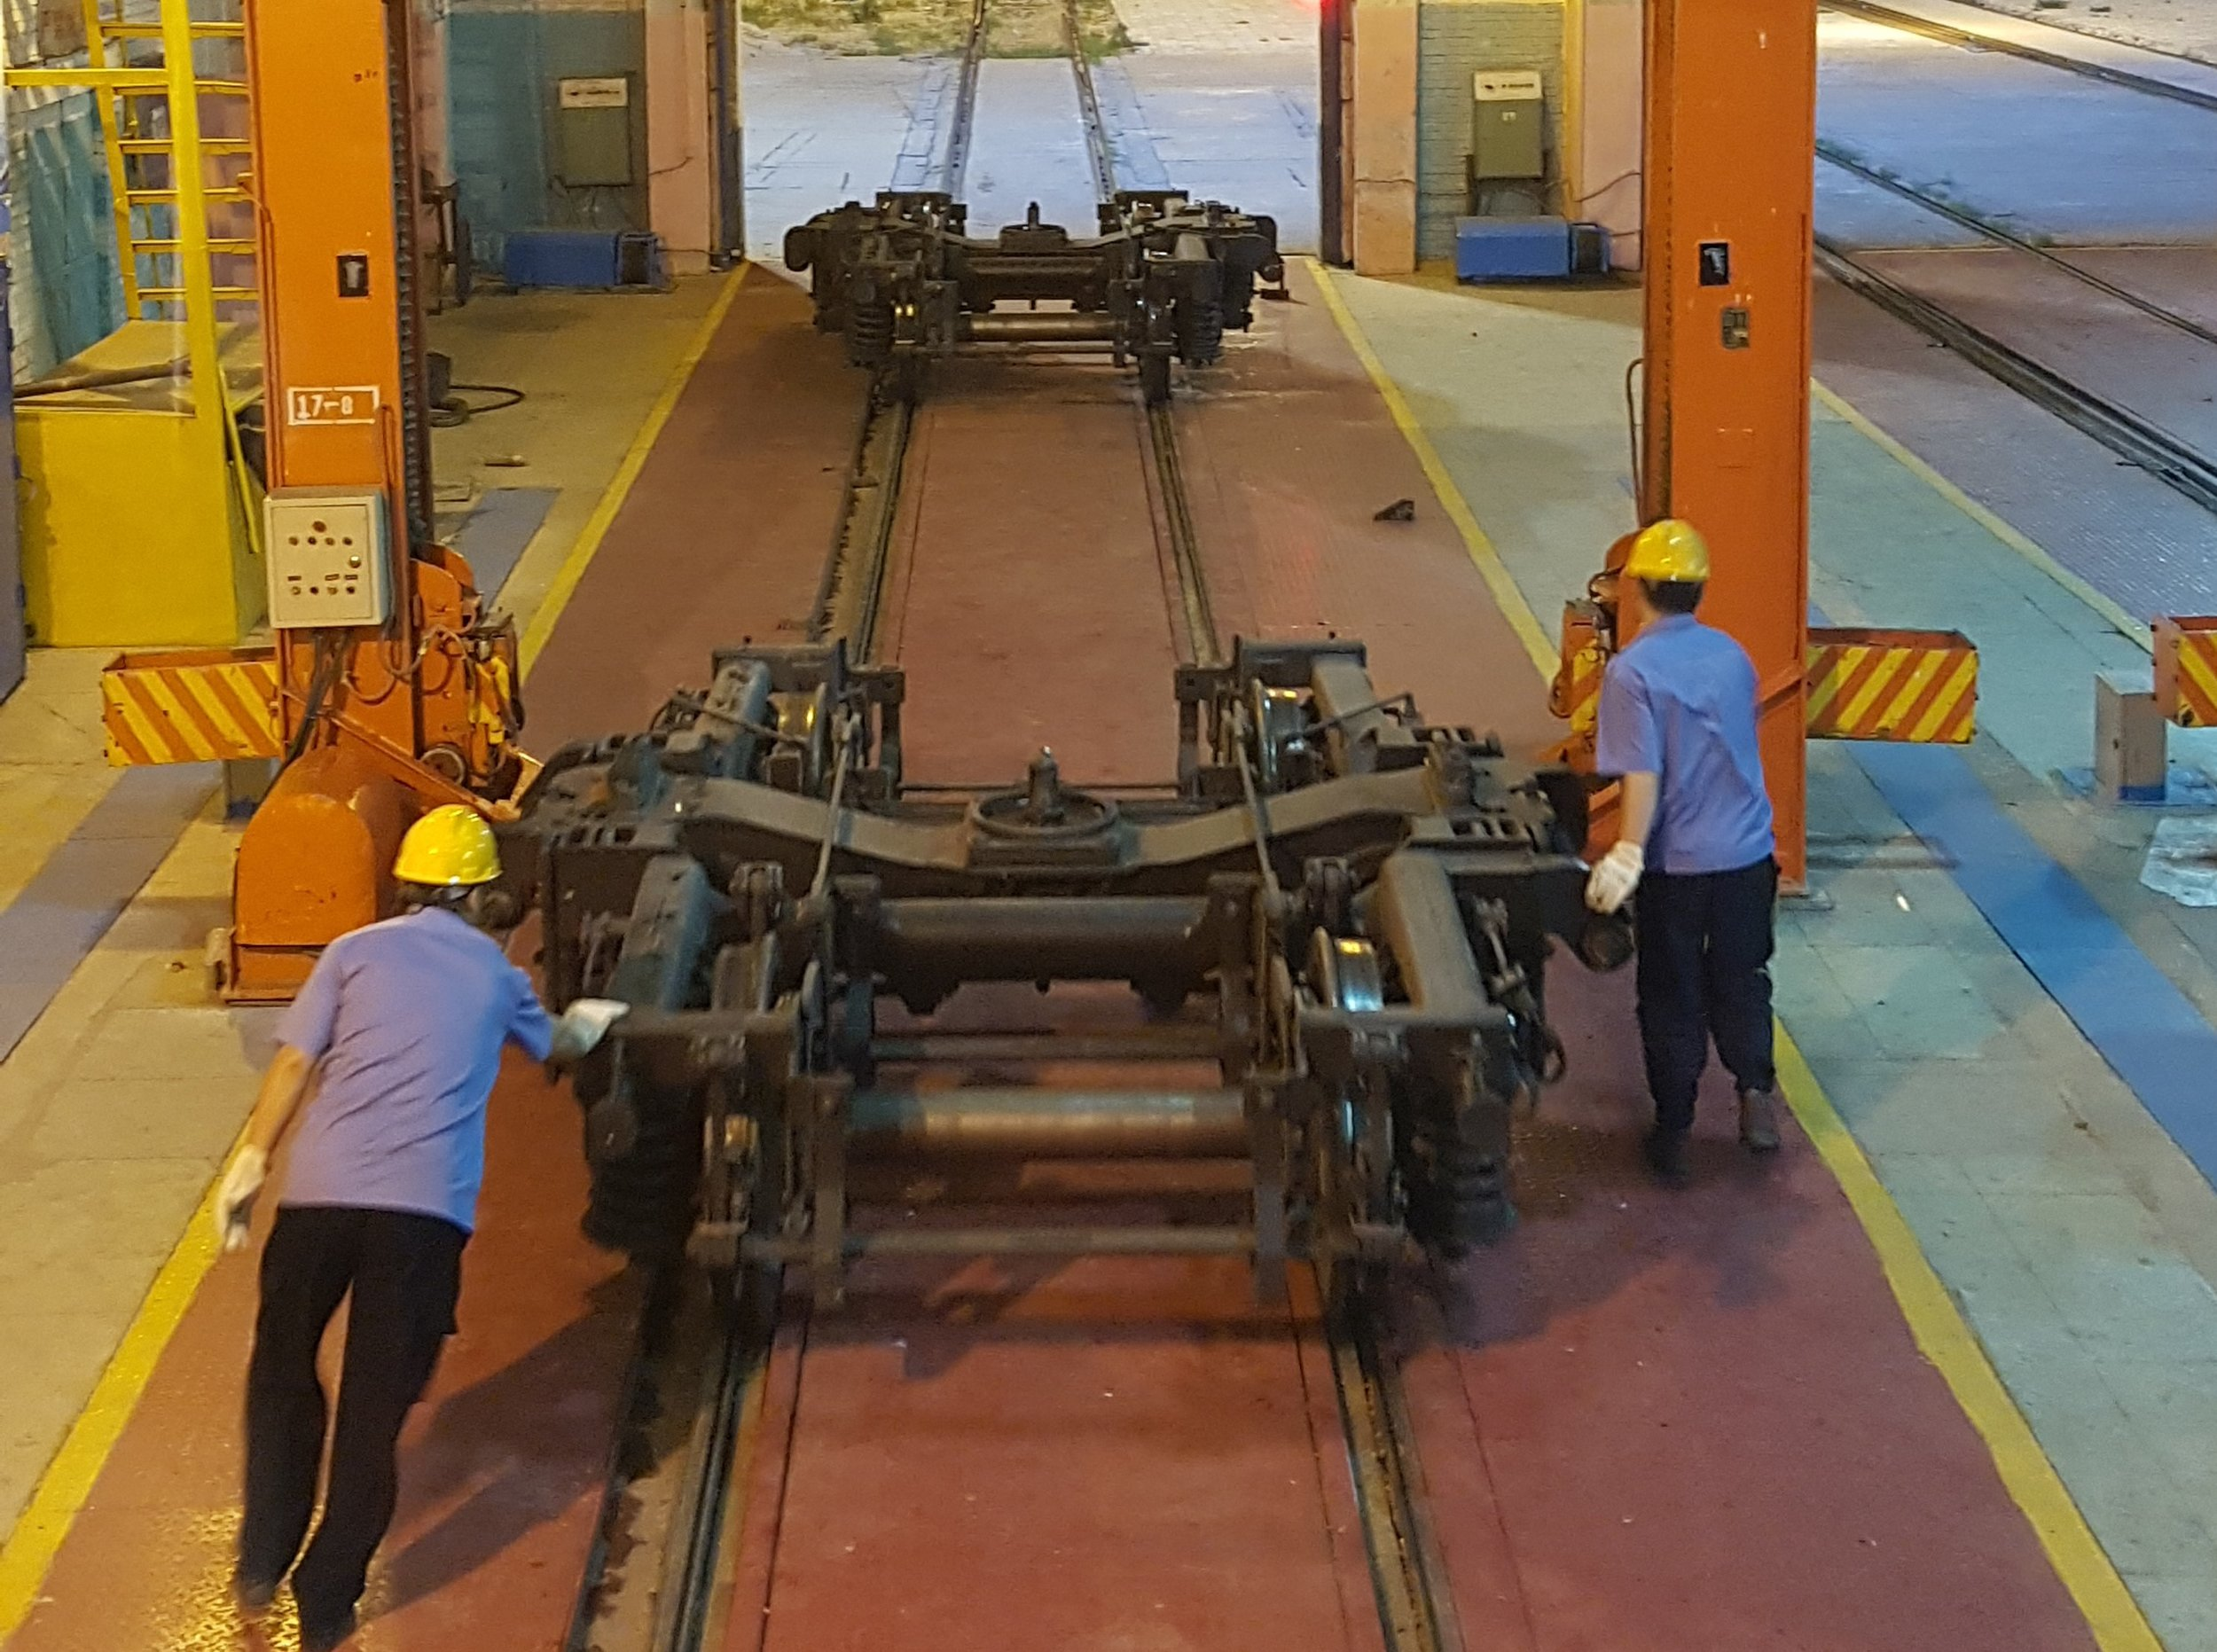 Changing the wheels underneath the train carriages